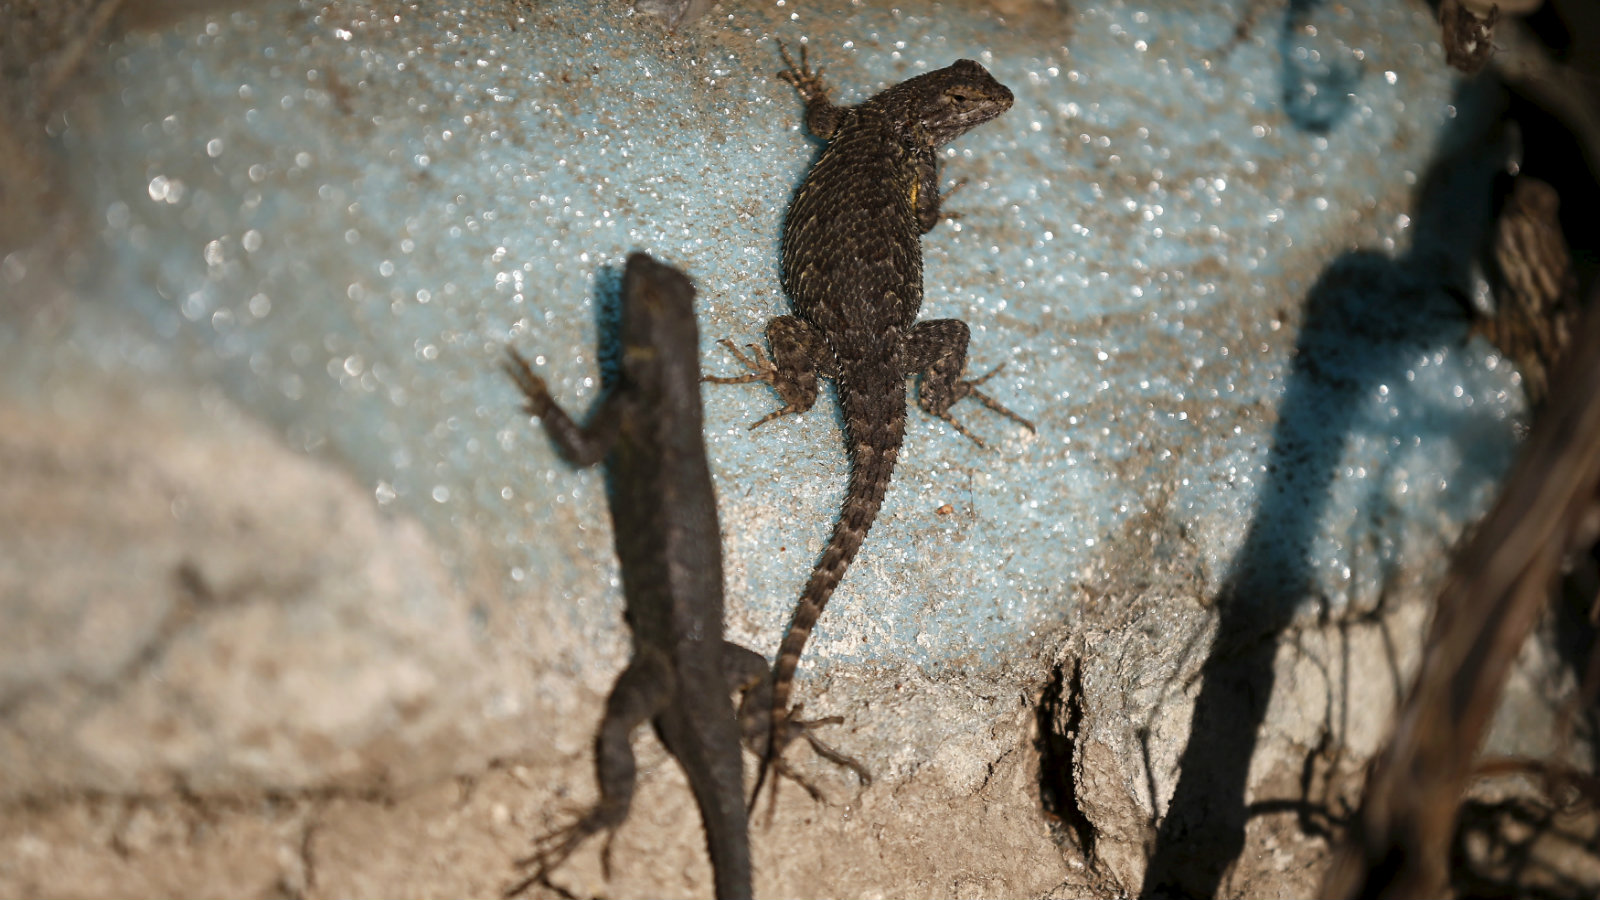 Lizards sun themselves on a dried out dock at Lake Cachuma in Santa Barbara, California March 27, 2015. California Governor Jerry Brown signed emergency legislation on Friday that fast-tracks over $1 billion in funding for drought relief and water infrastructure within the parched state. California is in its fourth year of a record-breaking drought.